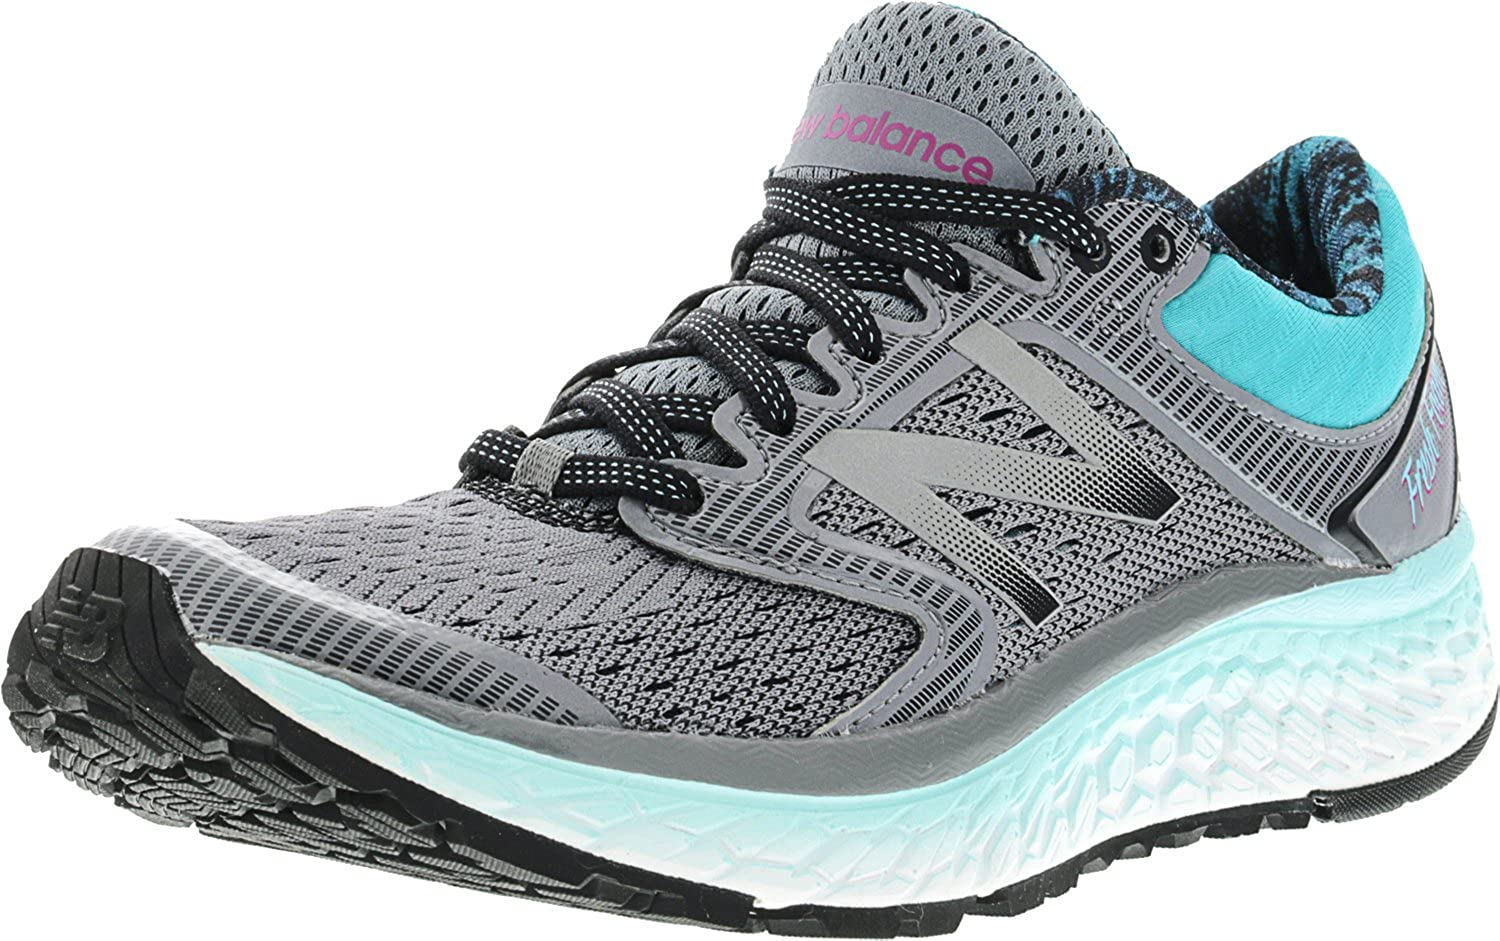 即日発送 New Balance Women's W1080 Shoe Ankle-High Running B(M) Shoe B01MRN4010 Silver US/Blu 8.5 B(M) US 8.5 B(M) US|Silver/Blu, ぼらんち【VOLANTE】:6d441ca9 --- kuoying.net